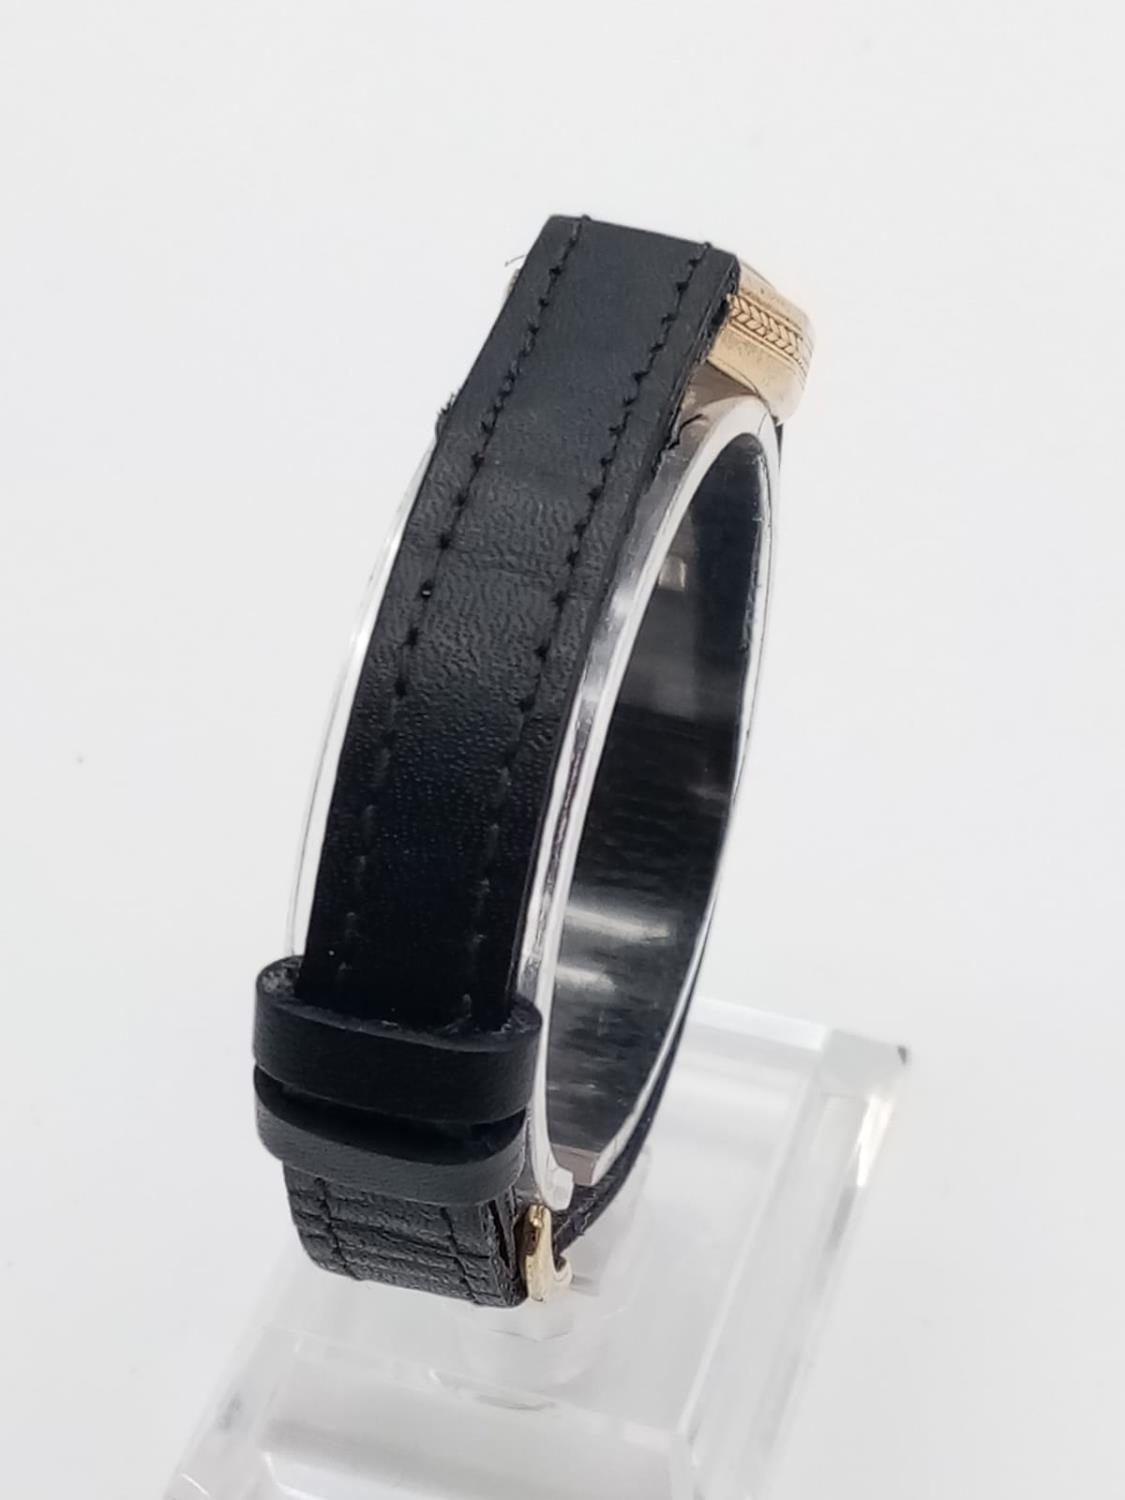 VINTAGE ROLEX 9K GOLD LADIES WRIST WATCH ON LEATHER STRAP. 16MM FWO - Image 4 of 6